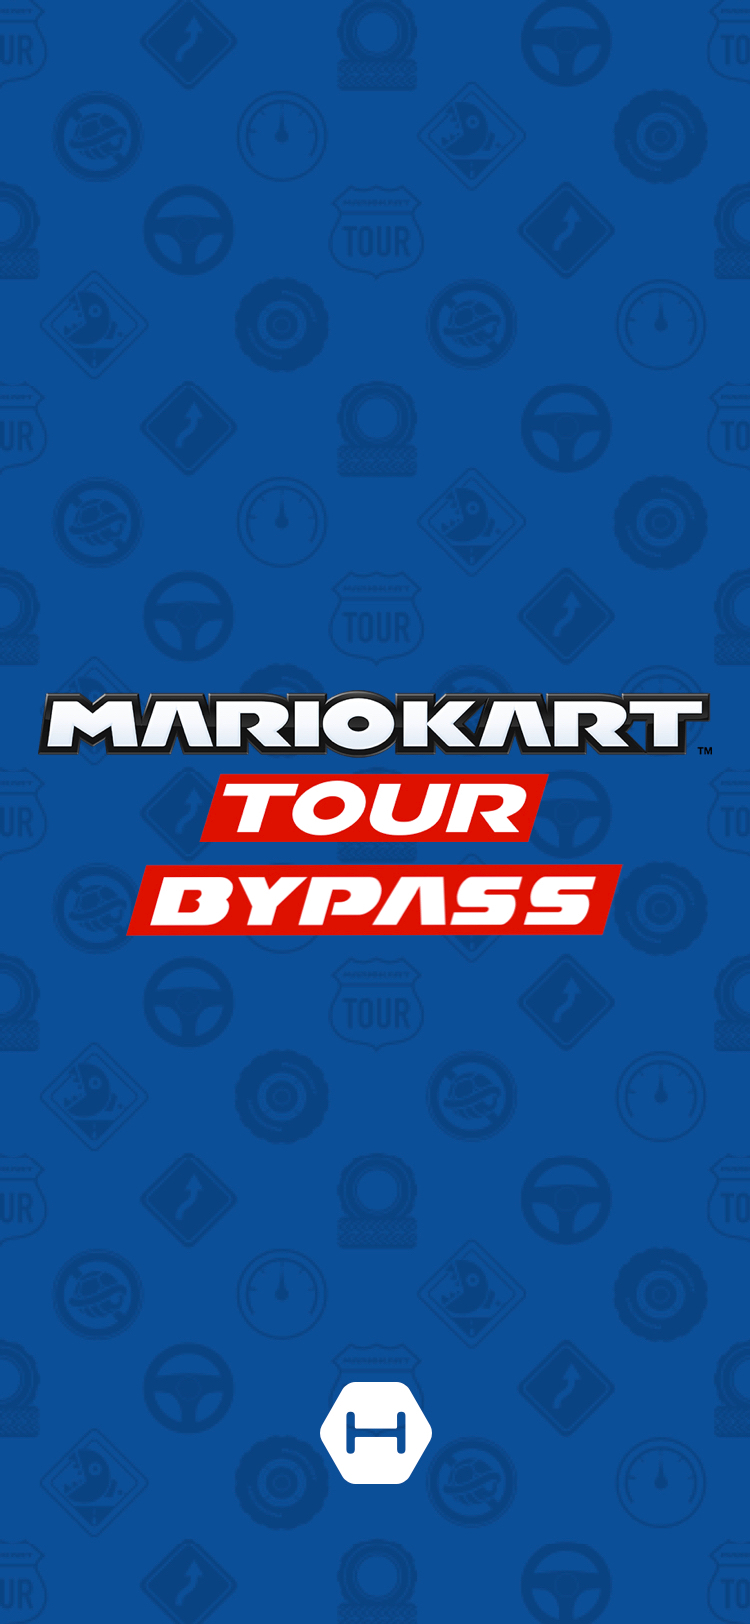 Download Mario Kart Tour Bypass 1.6.0